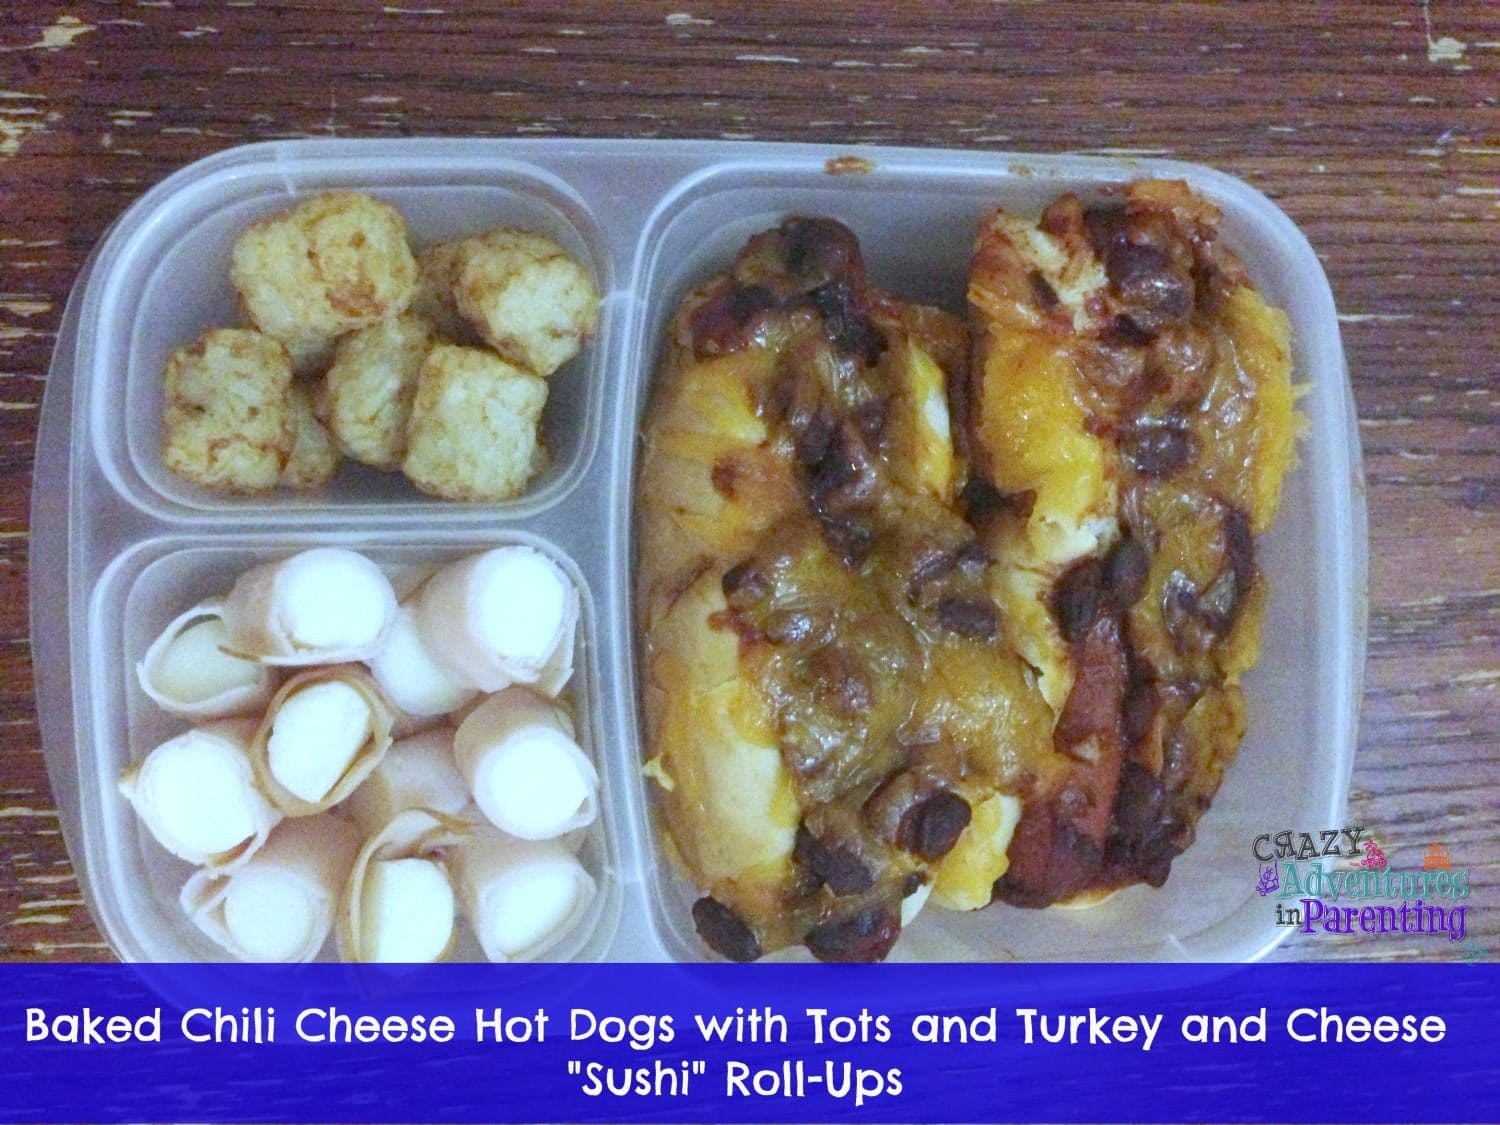 baked chili cheese hot dogs school lunch